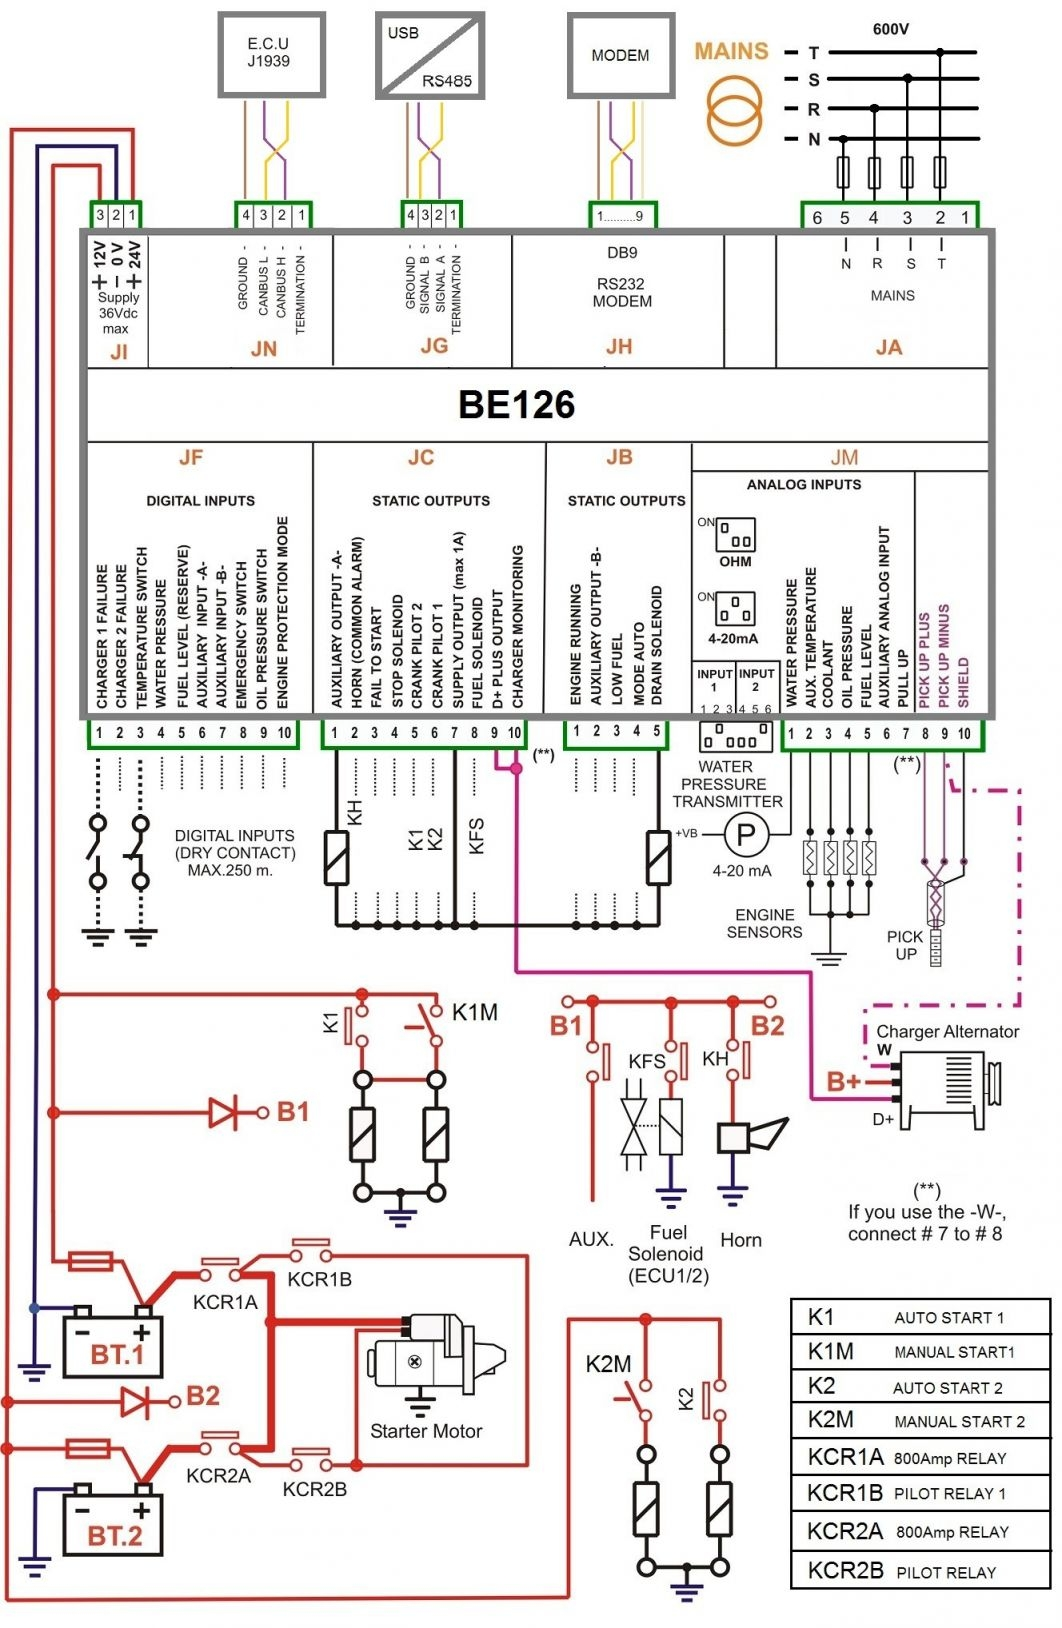 fire pump controller wiring diagram Collection-Well Liked Wiring Diagram Pool Pump Motor Save Fire Pump Controller Wiring Fire Pump Installation Diagram 1-a